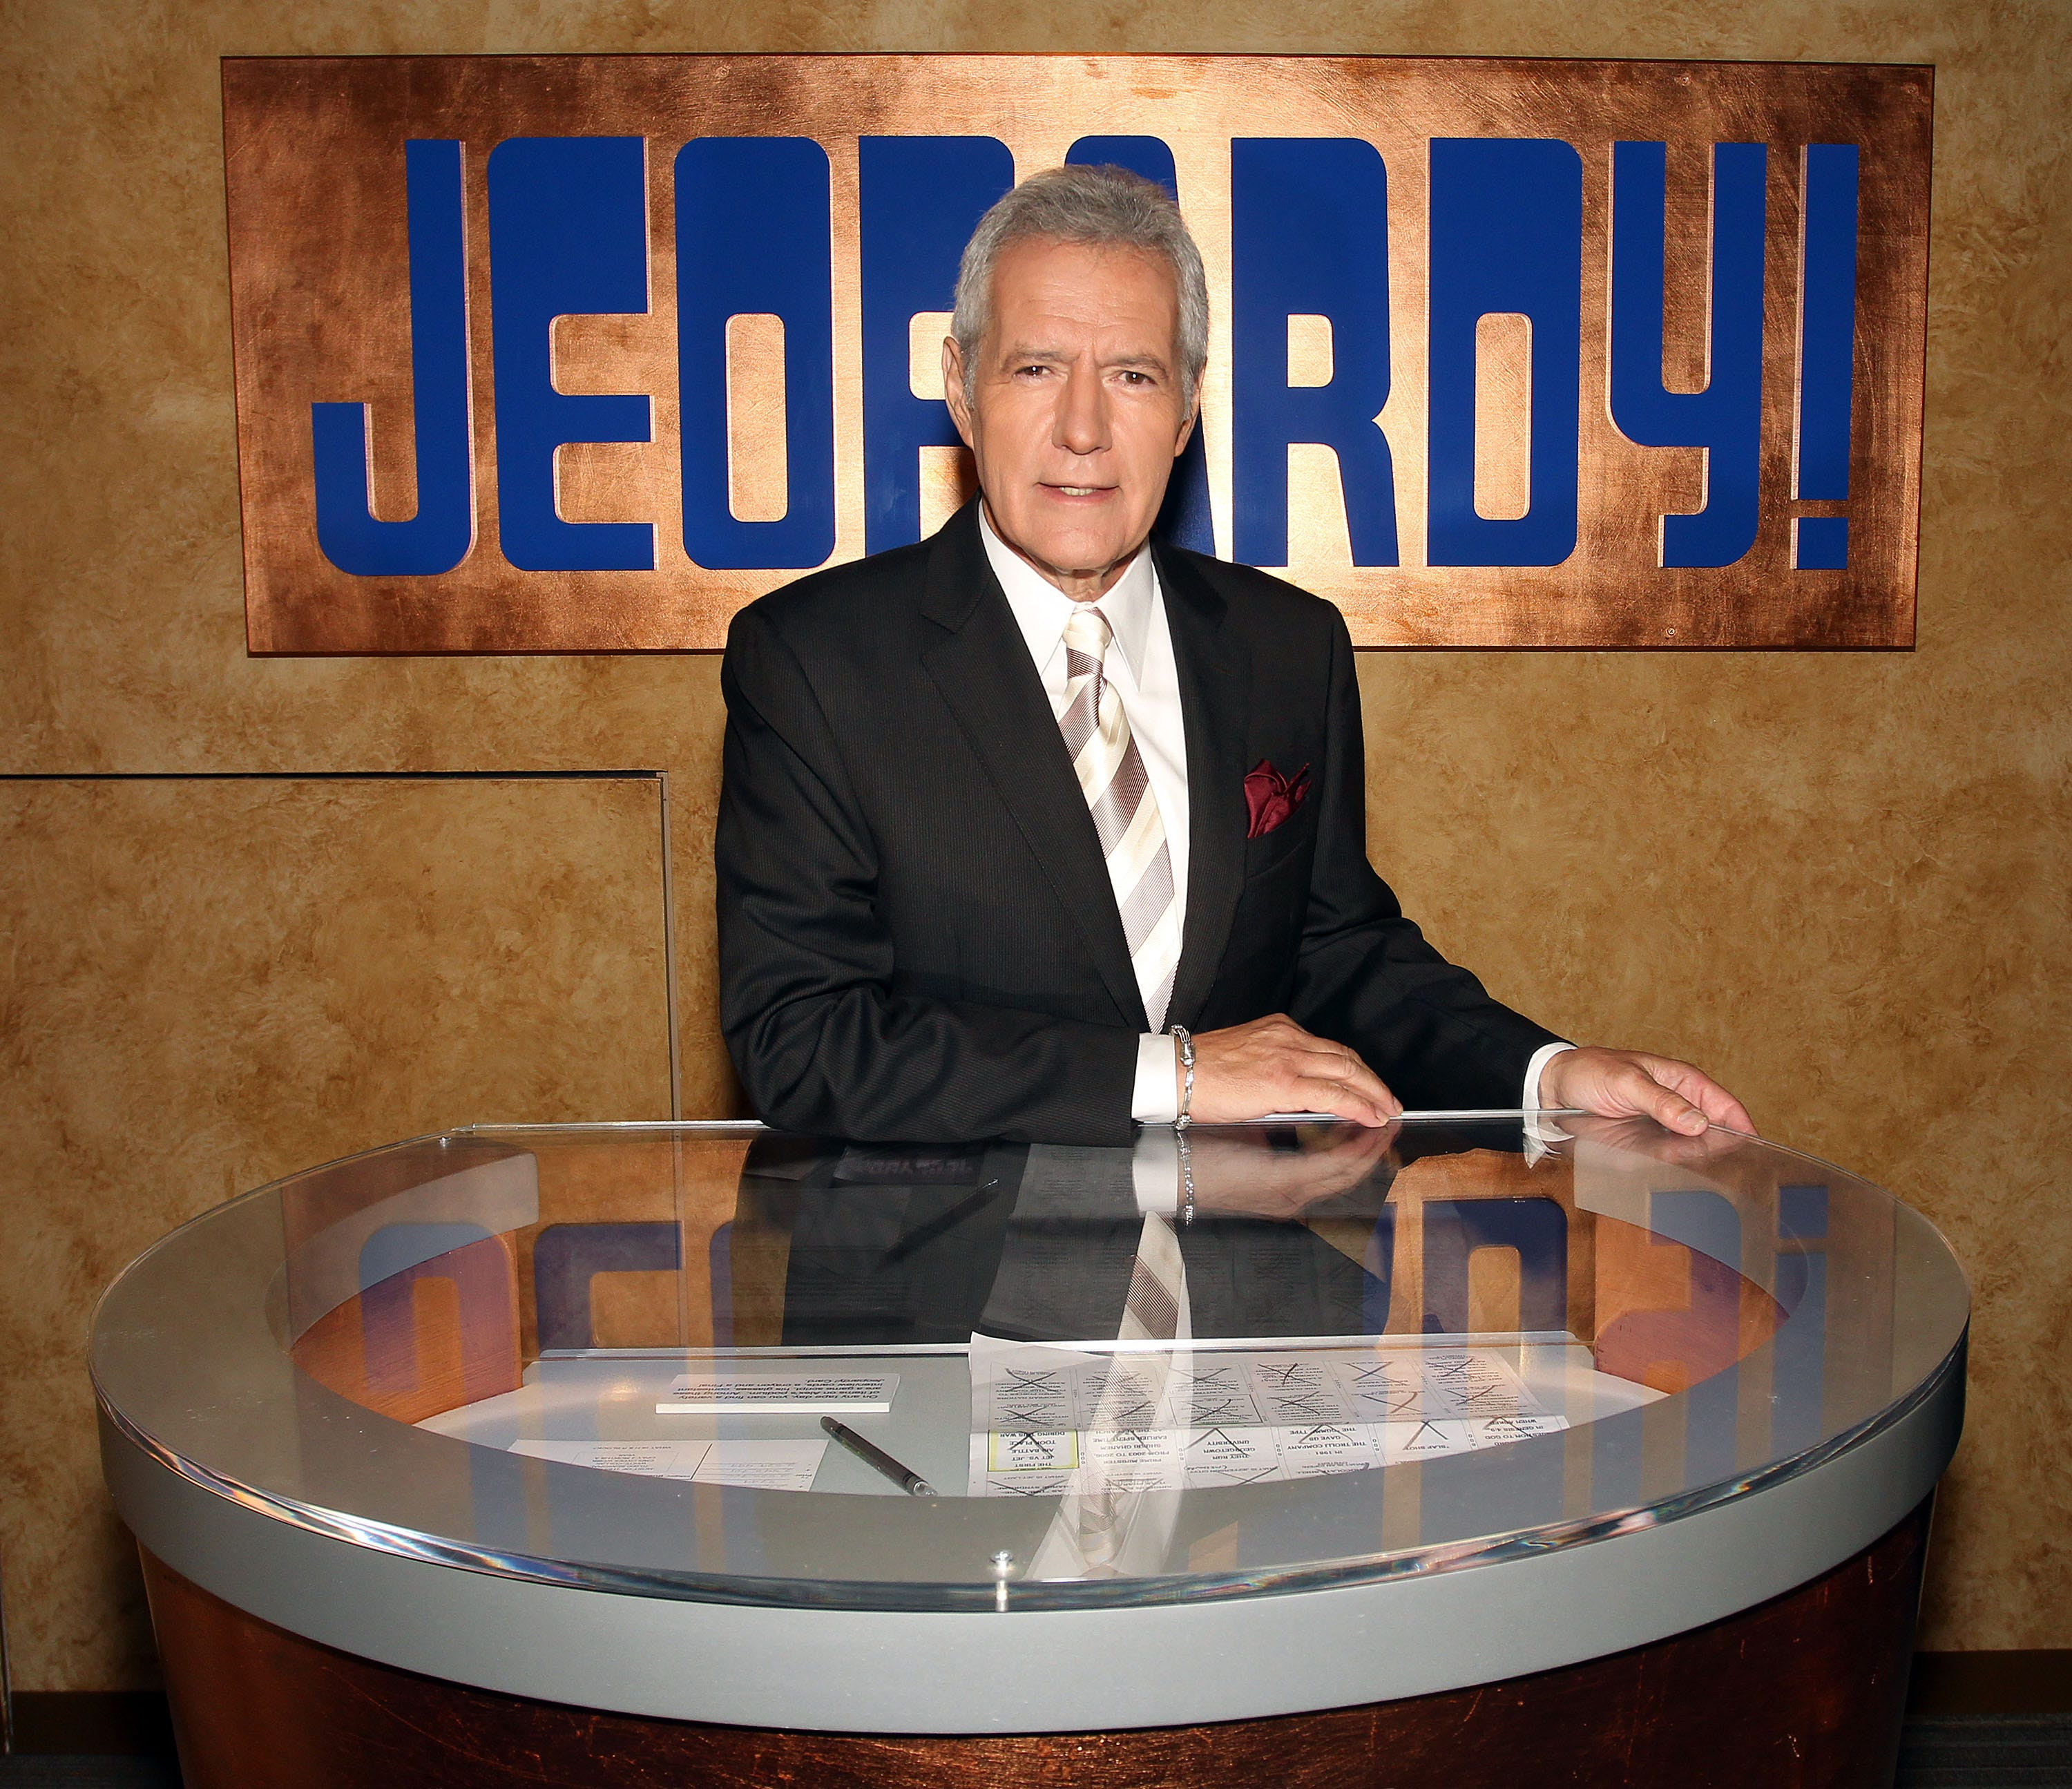 Moderator Alex Trebek poses at Sony Pictures for the 28th season premiere of the television program